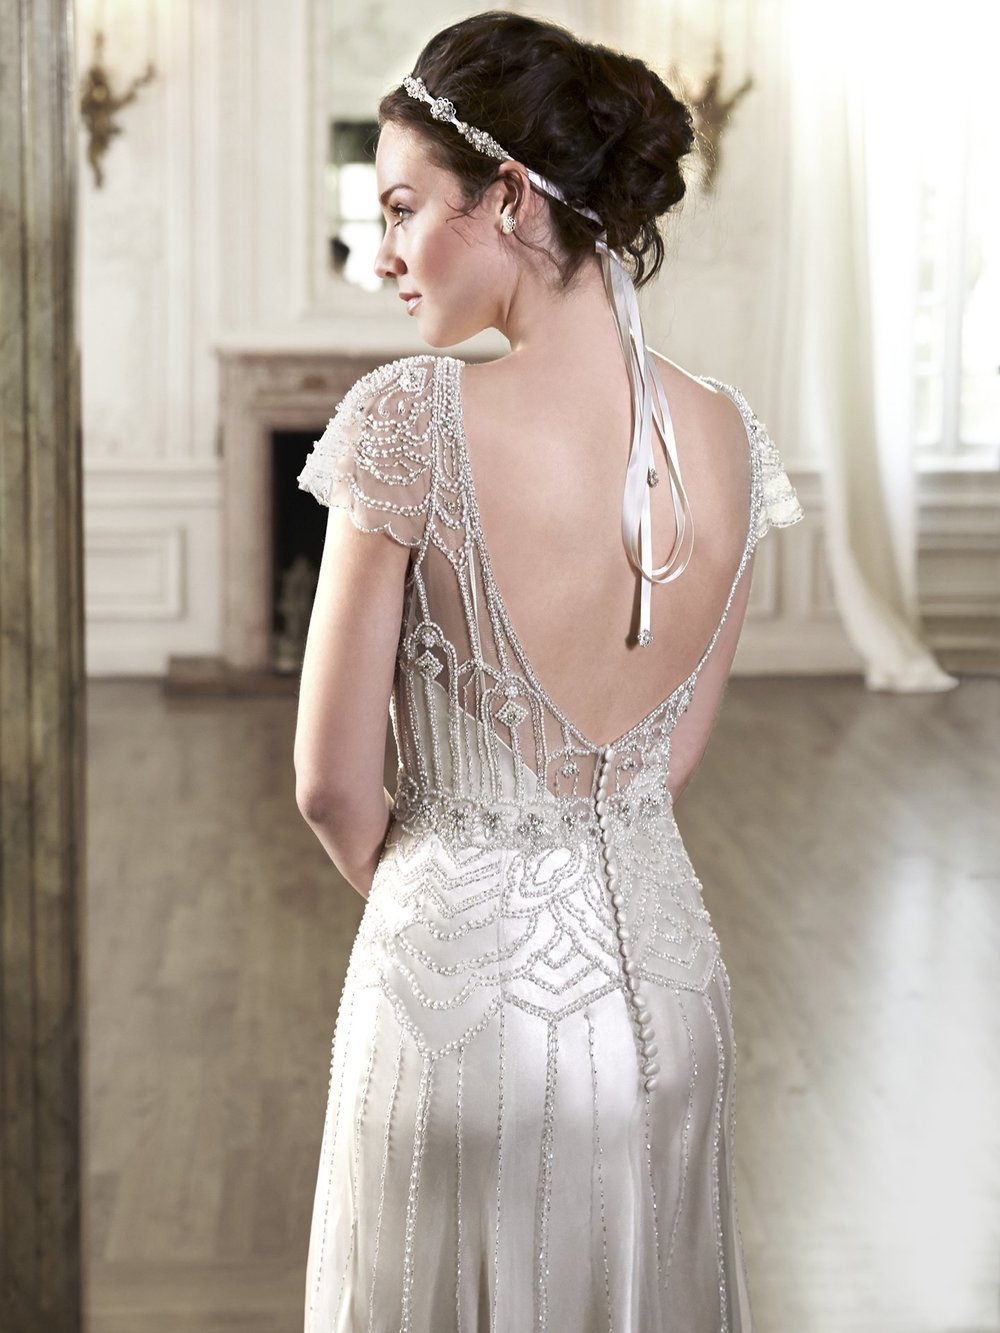 Maggie-Sottero-Wedding-Dress-Ettia-5MN084-alt1.jpg